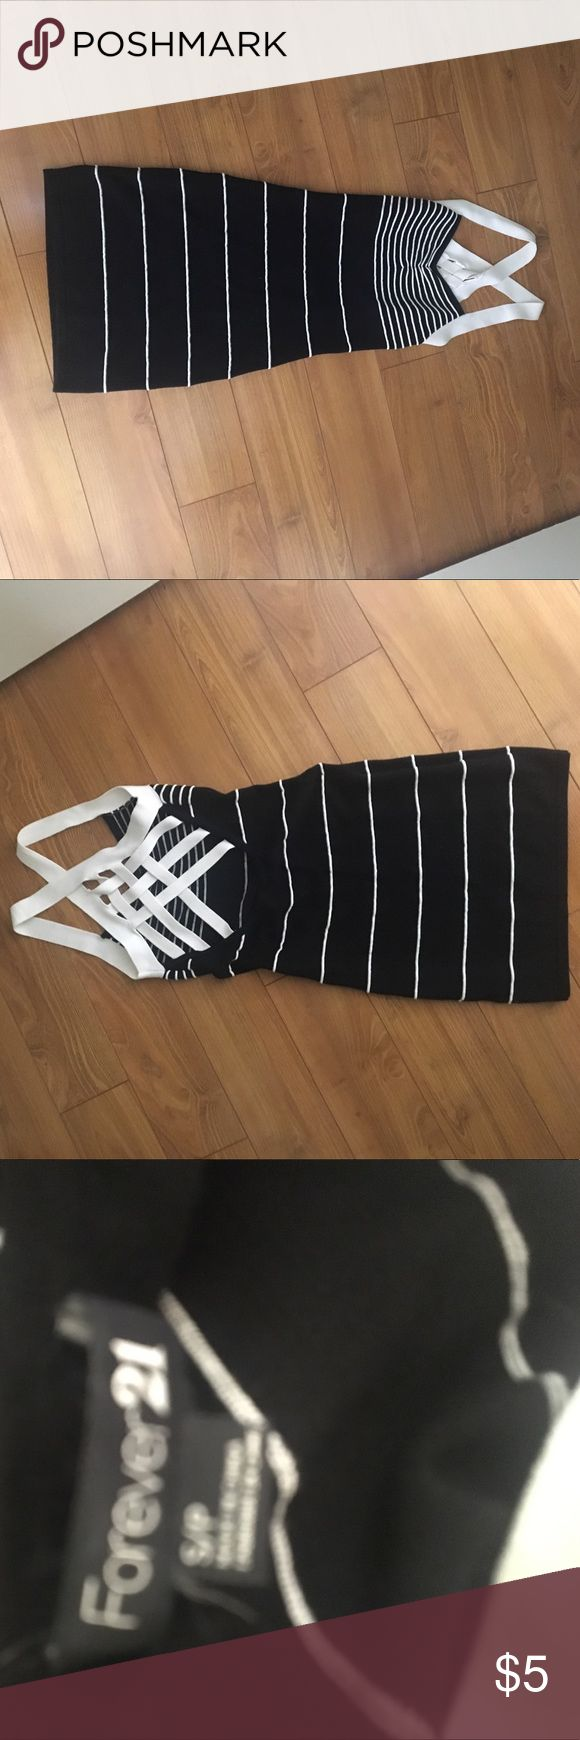 F21 short black & white dress! Tight fitting dress for a night out! Worn a few times. Forever 21 Dresses Mini